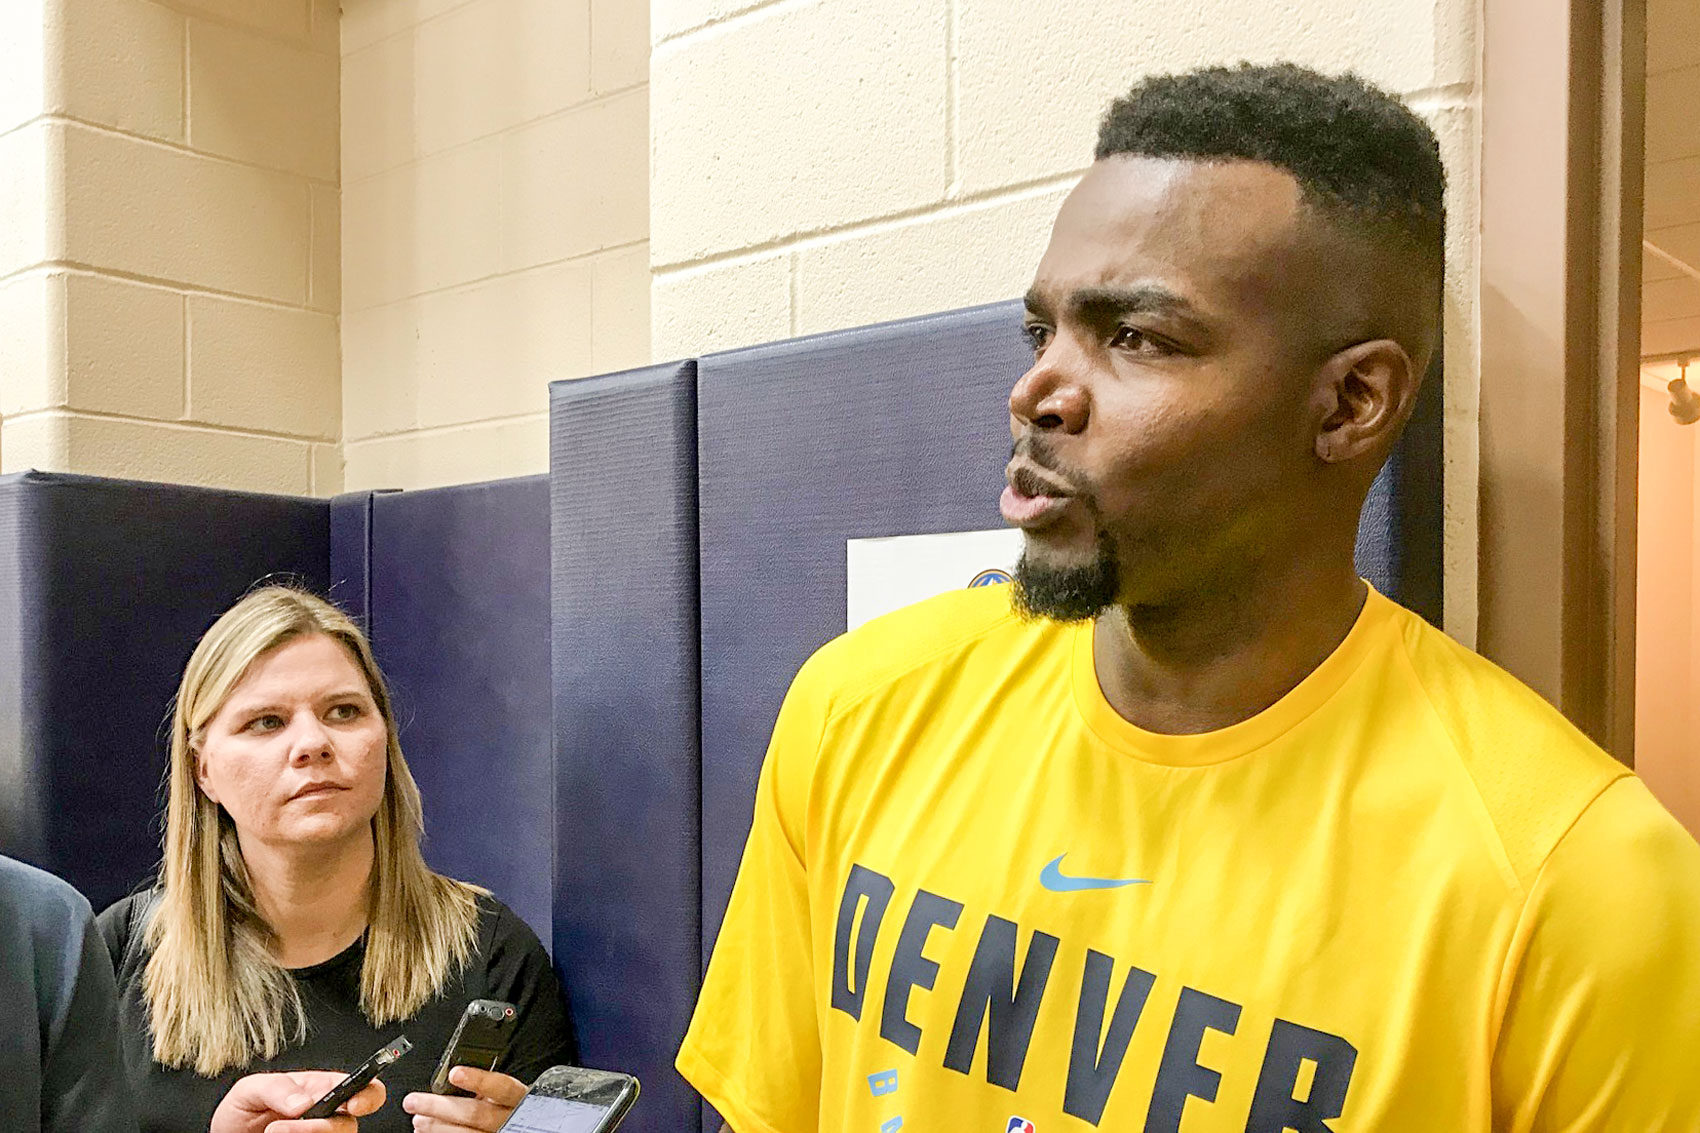 <p>Free agent Denver Nugget power forward Paul Millsap taking questions from reporters. The Denver Post's Gina Mizell is in the background.</p>